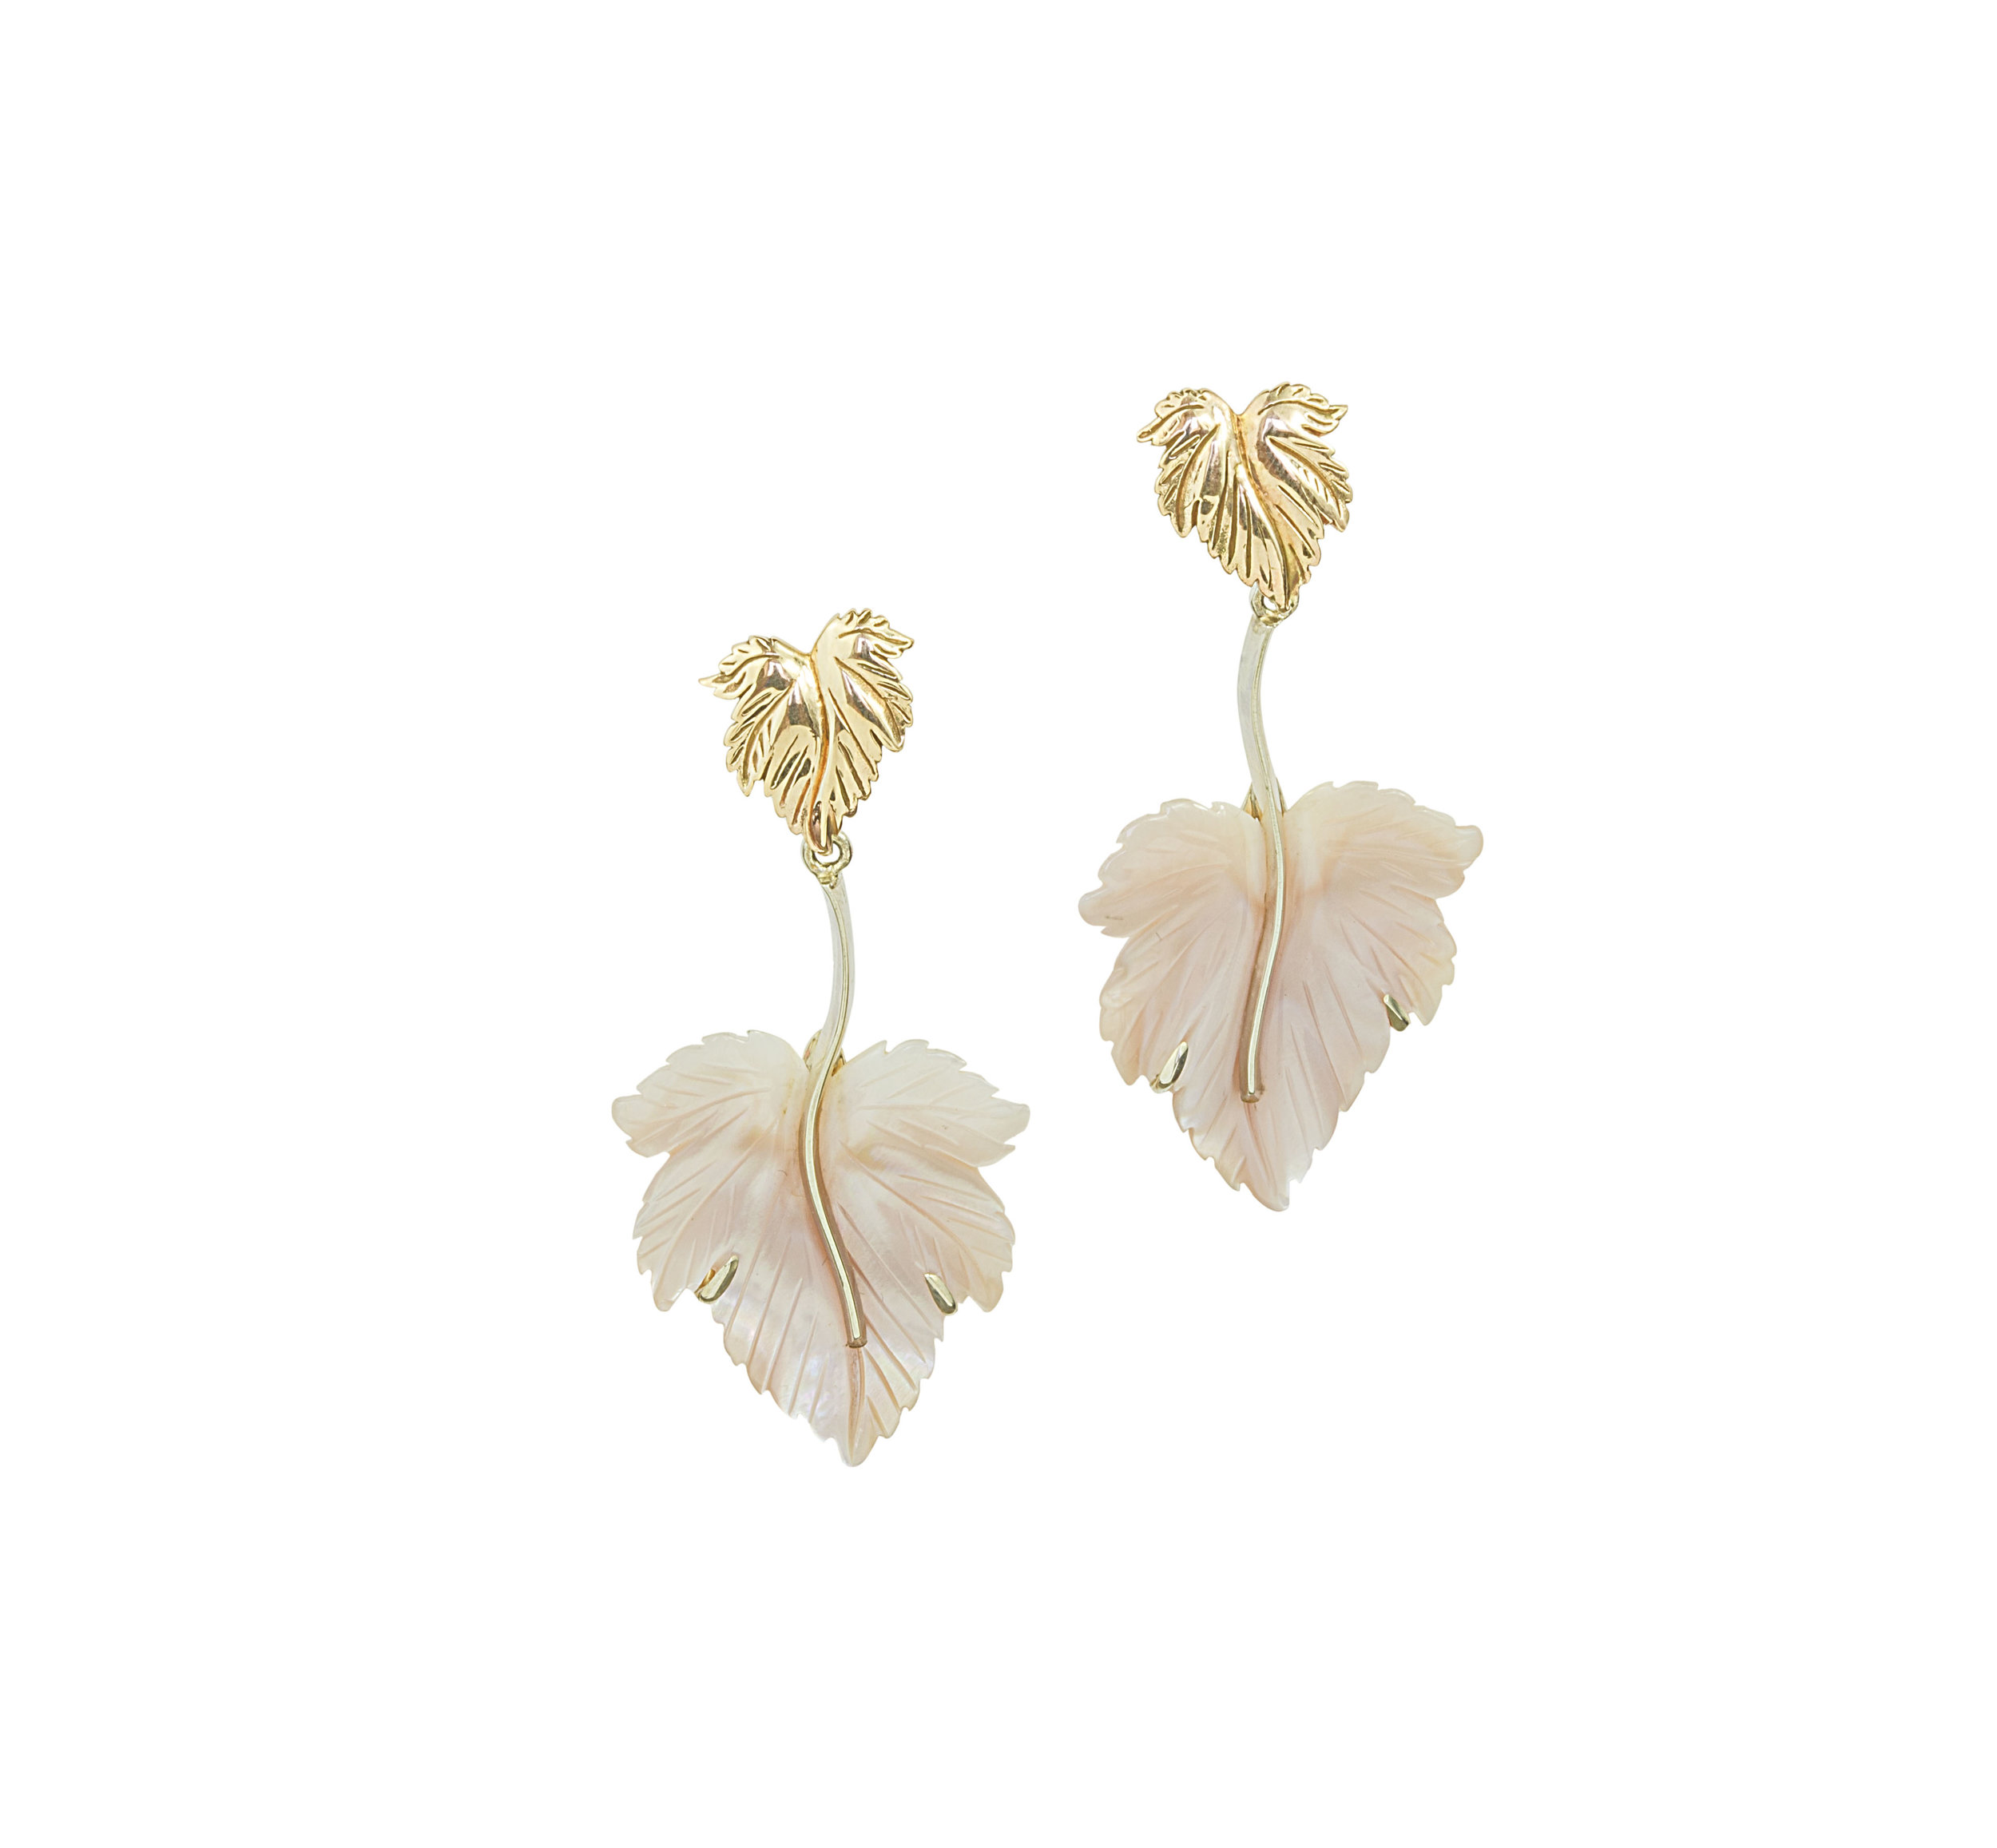 Carved mother of pearl leaves with hand carved and cast into wax rose gold feature at the top